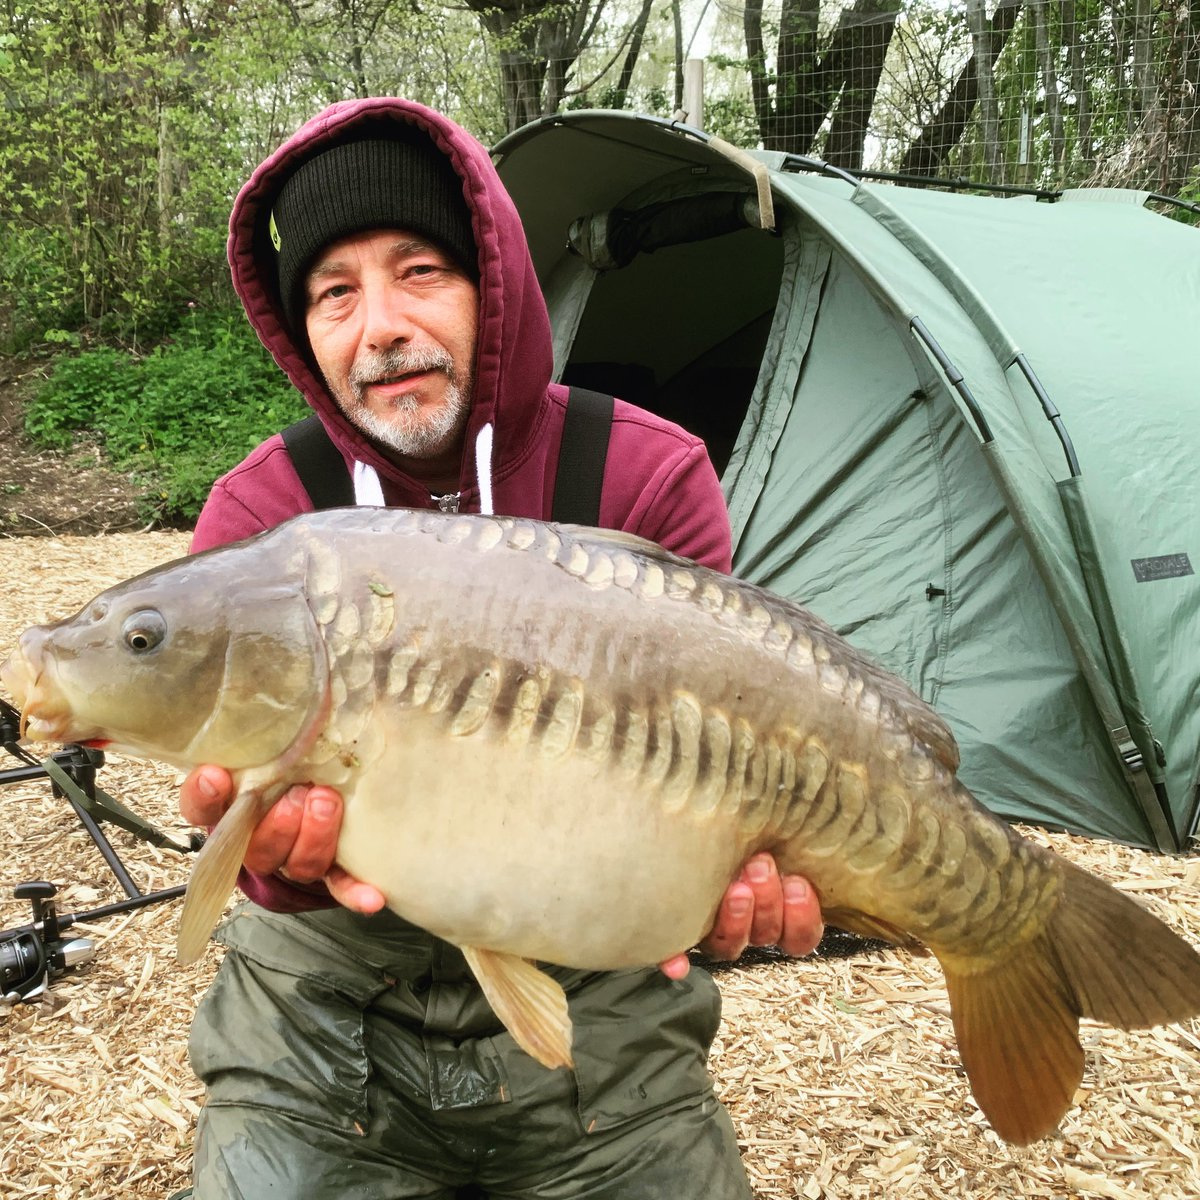 Stunning Mirror Carp #carpfishing #mirrorcarp #carphunter #ukcarpfishing https://t.co/wZcVqUHort